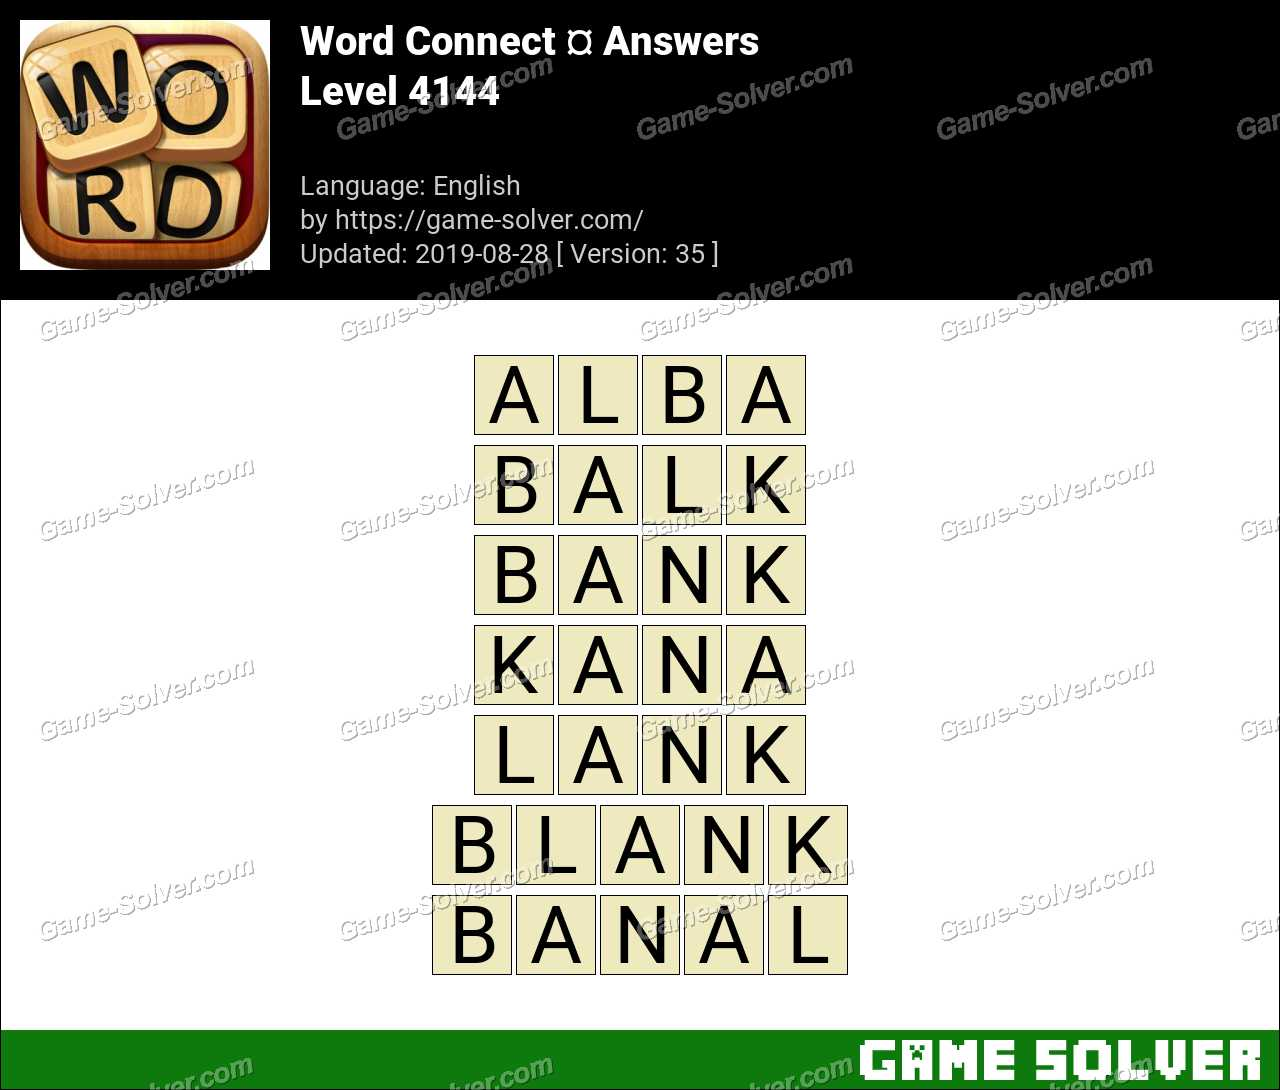 Word Connect Level 4144 Answers